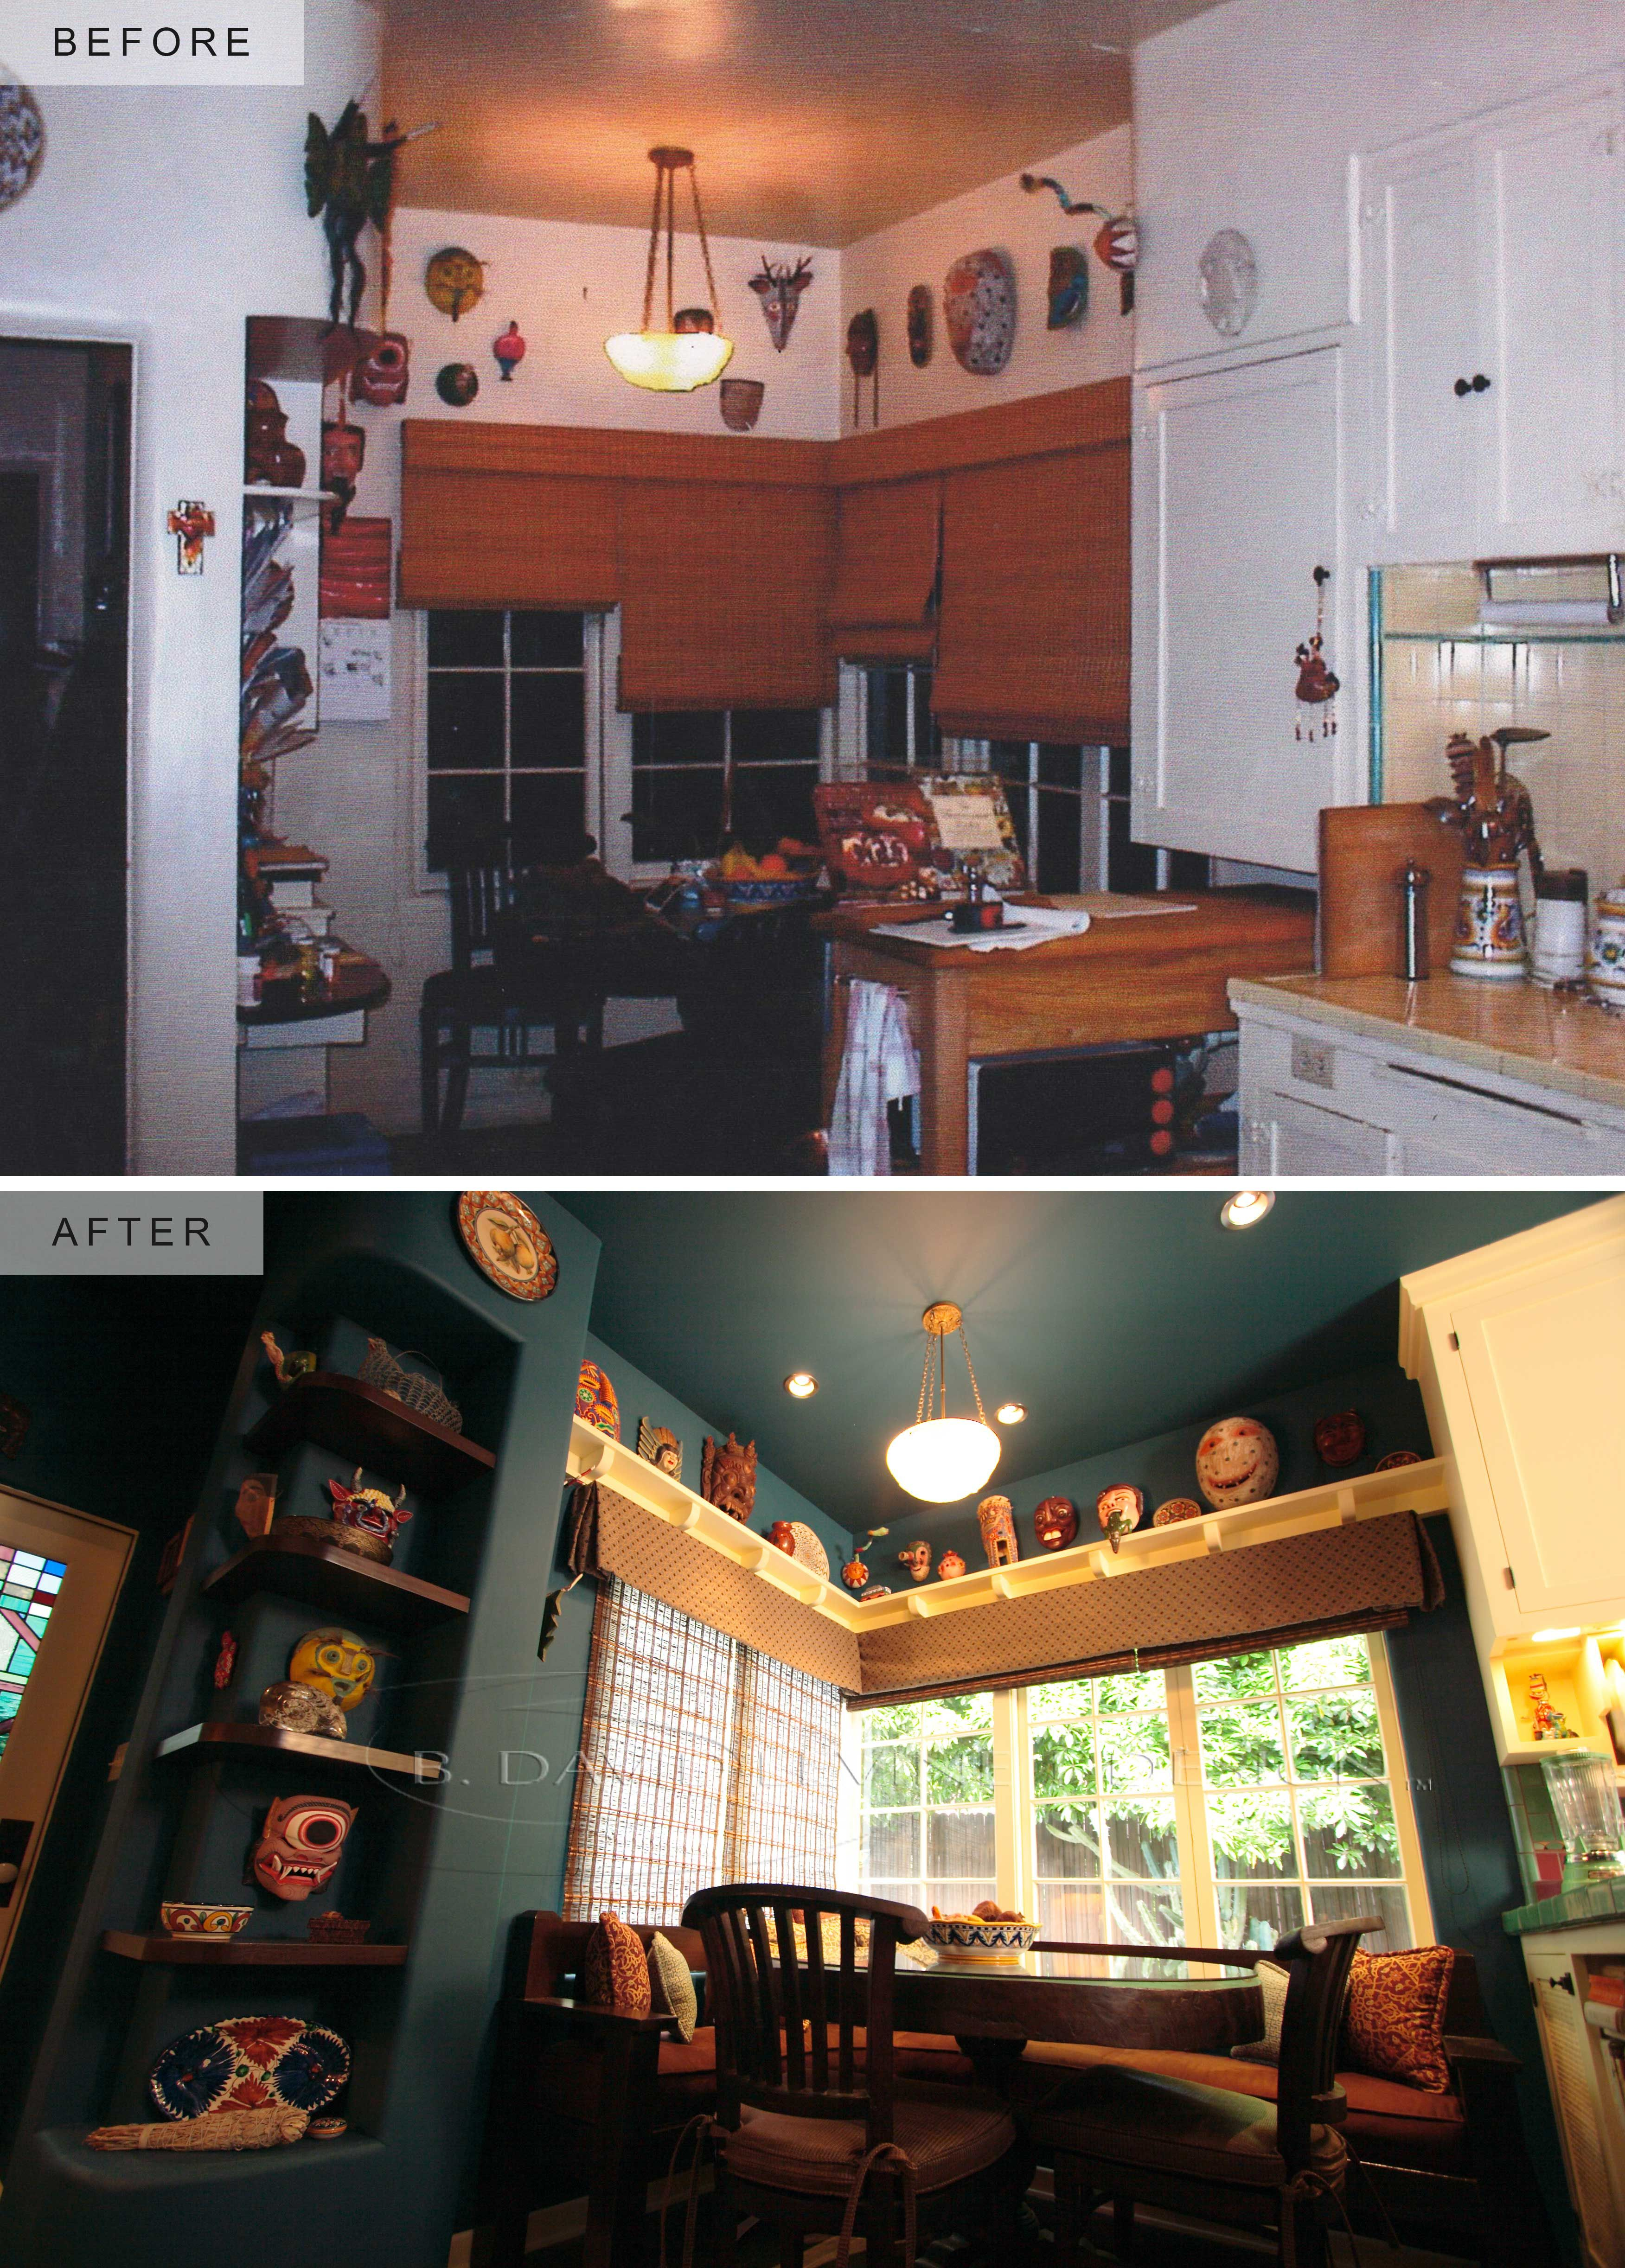 Before and After - HGTV Kitchen